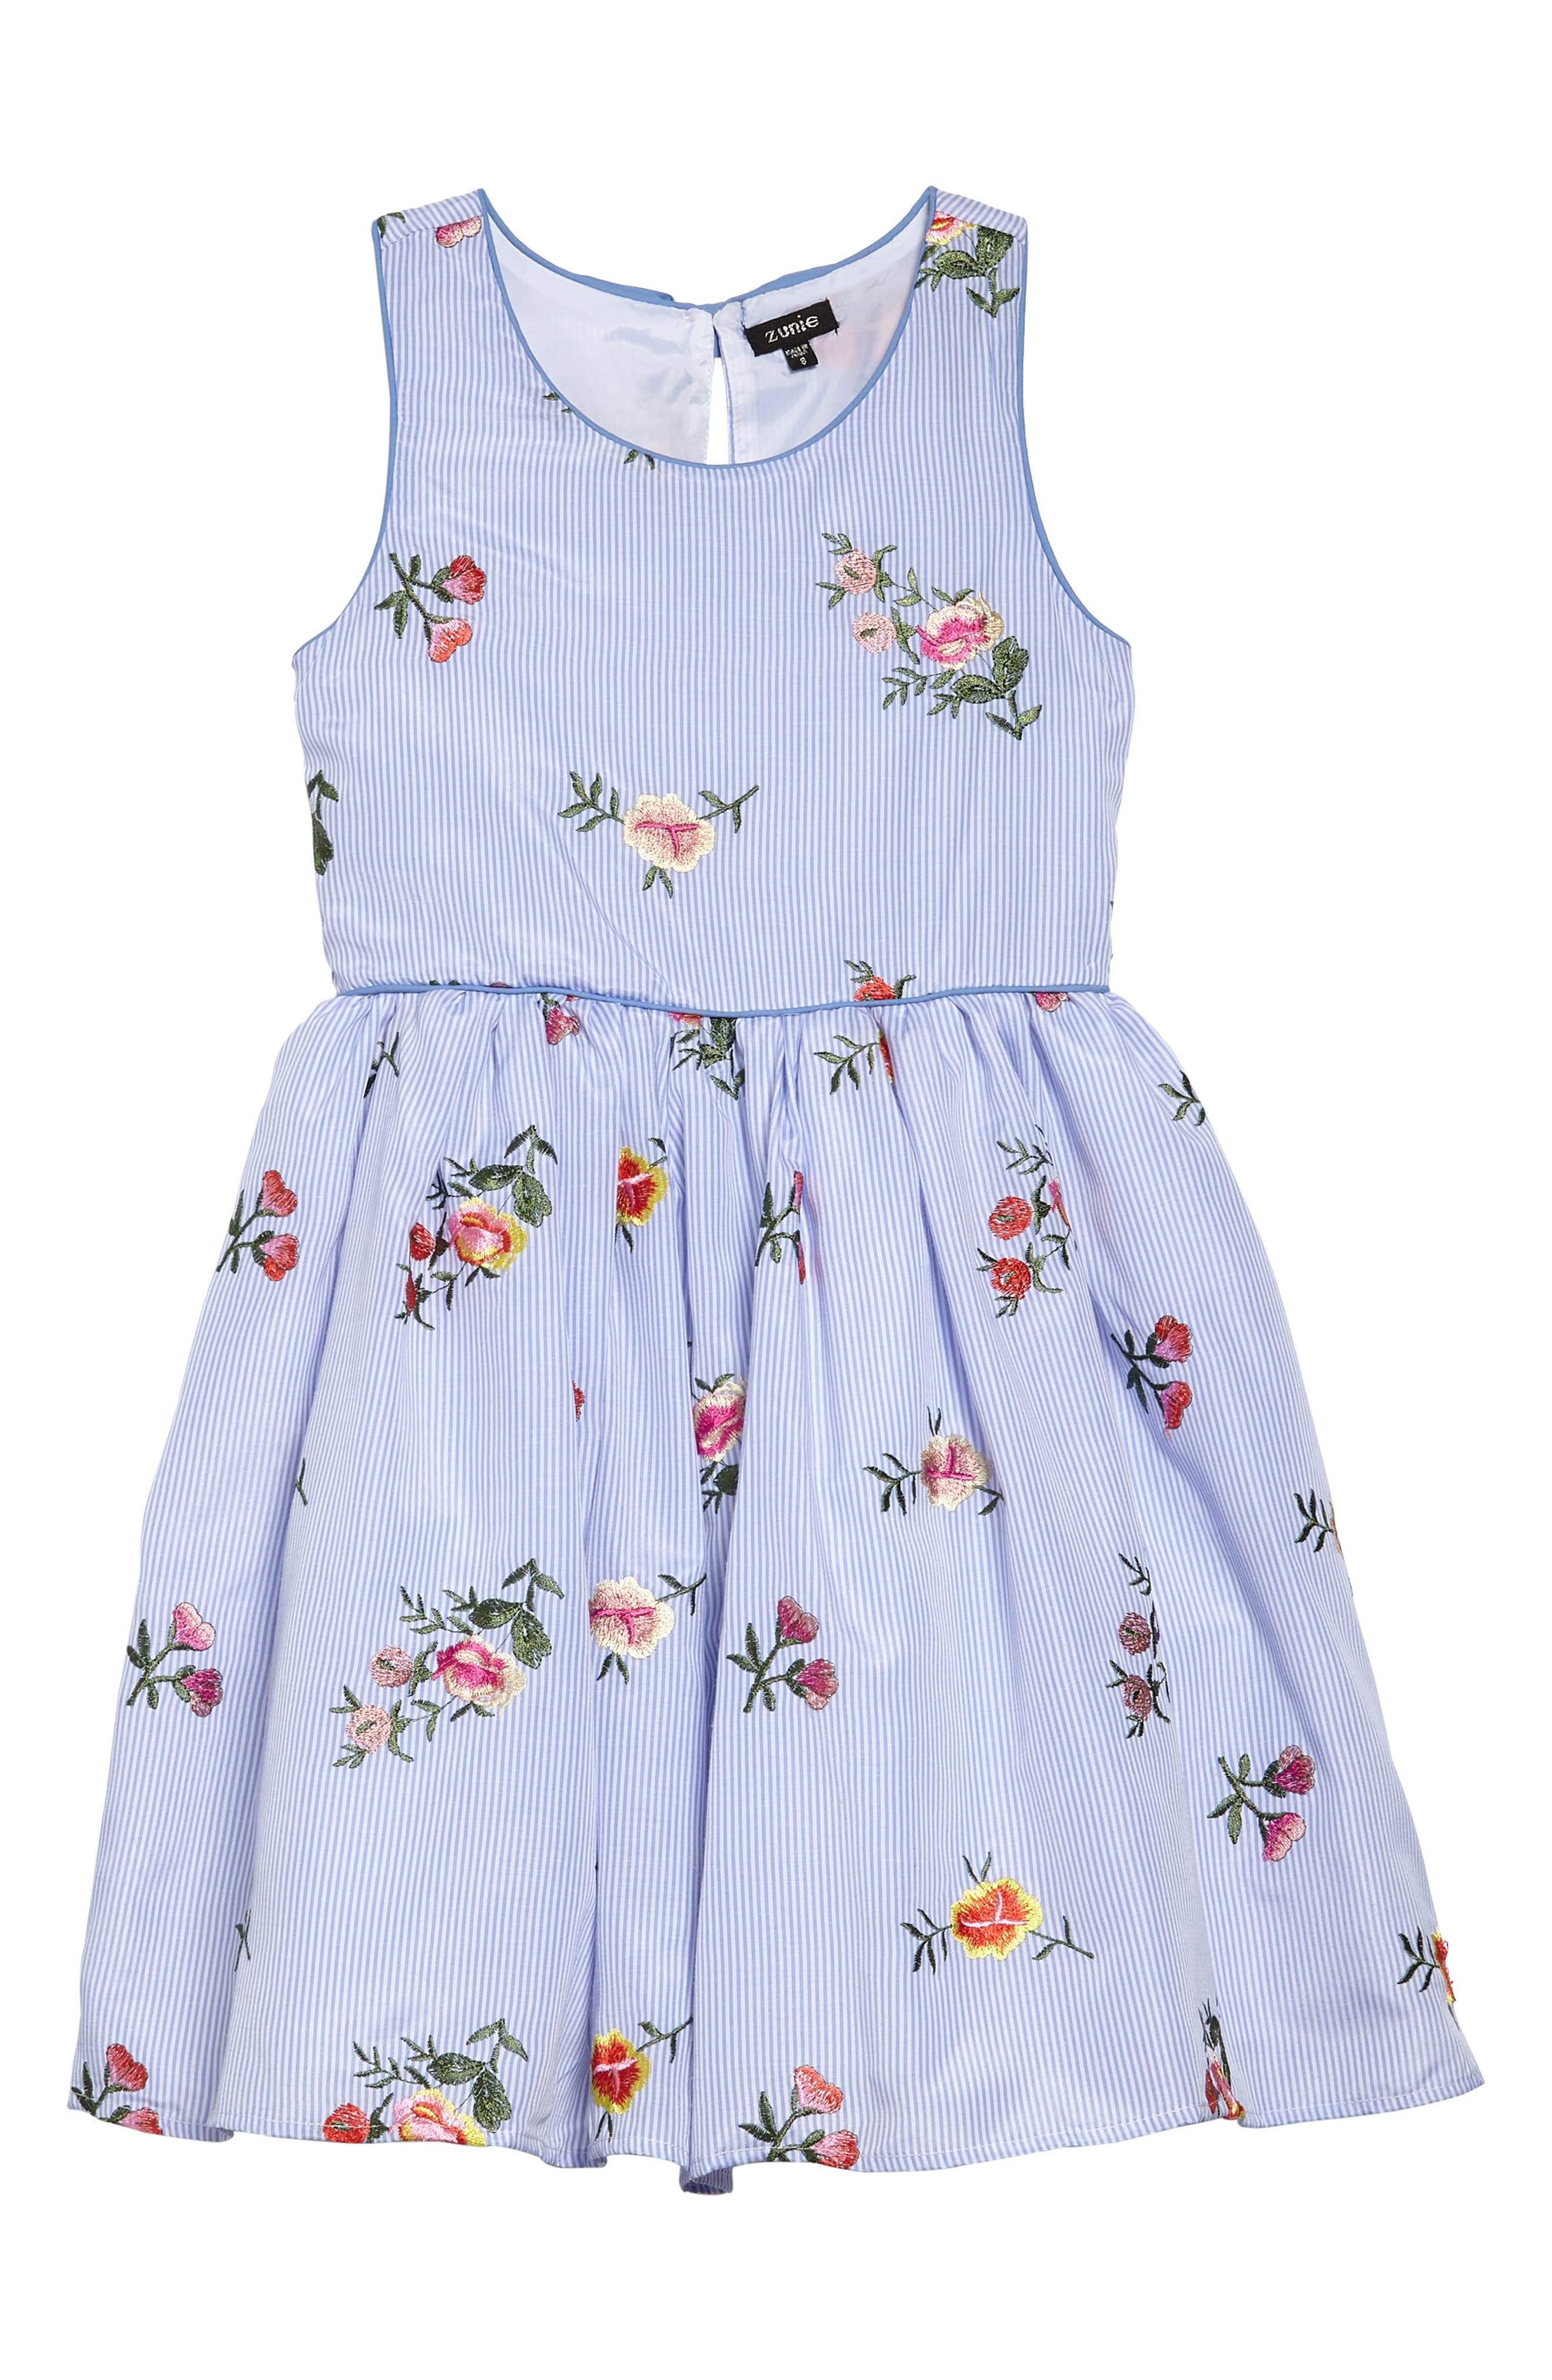 Stripe Embroidered Flower Sleeveless Dress,                         Main,                         color, 424